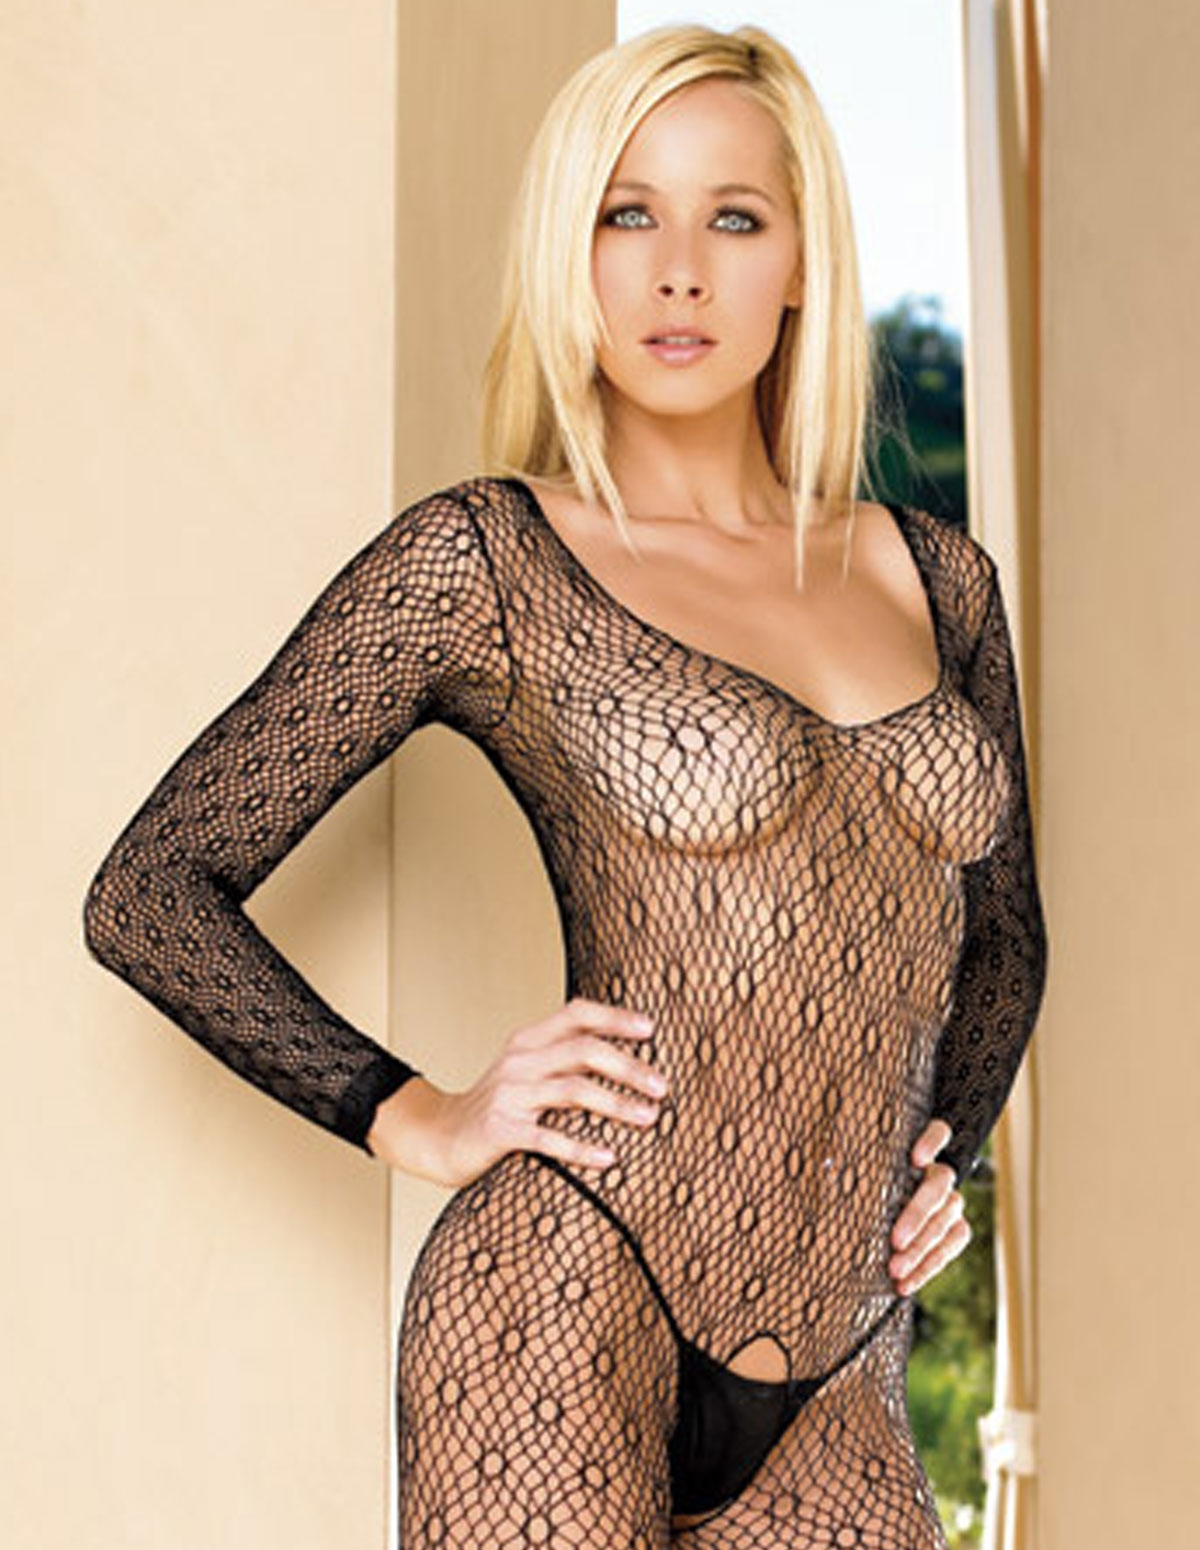 Honeycomb Bodystocking